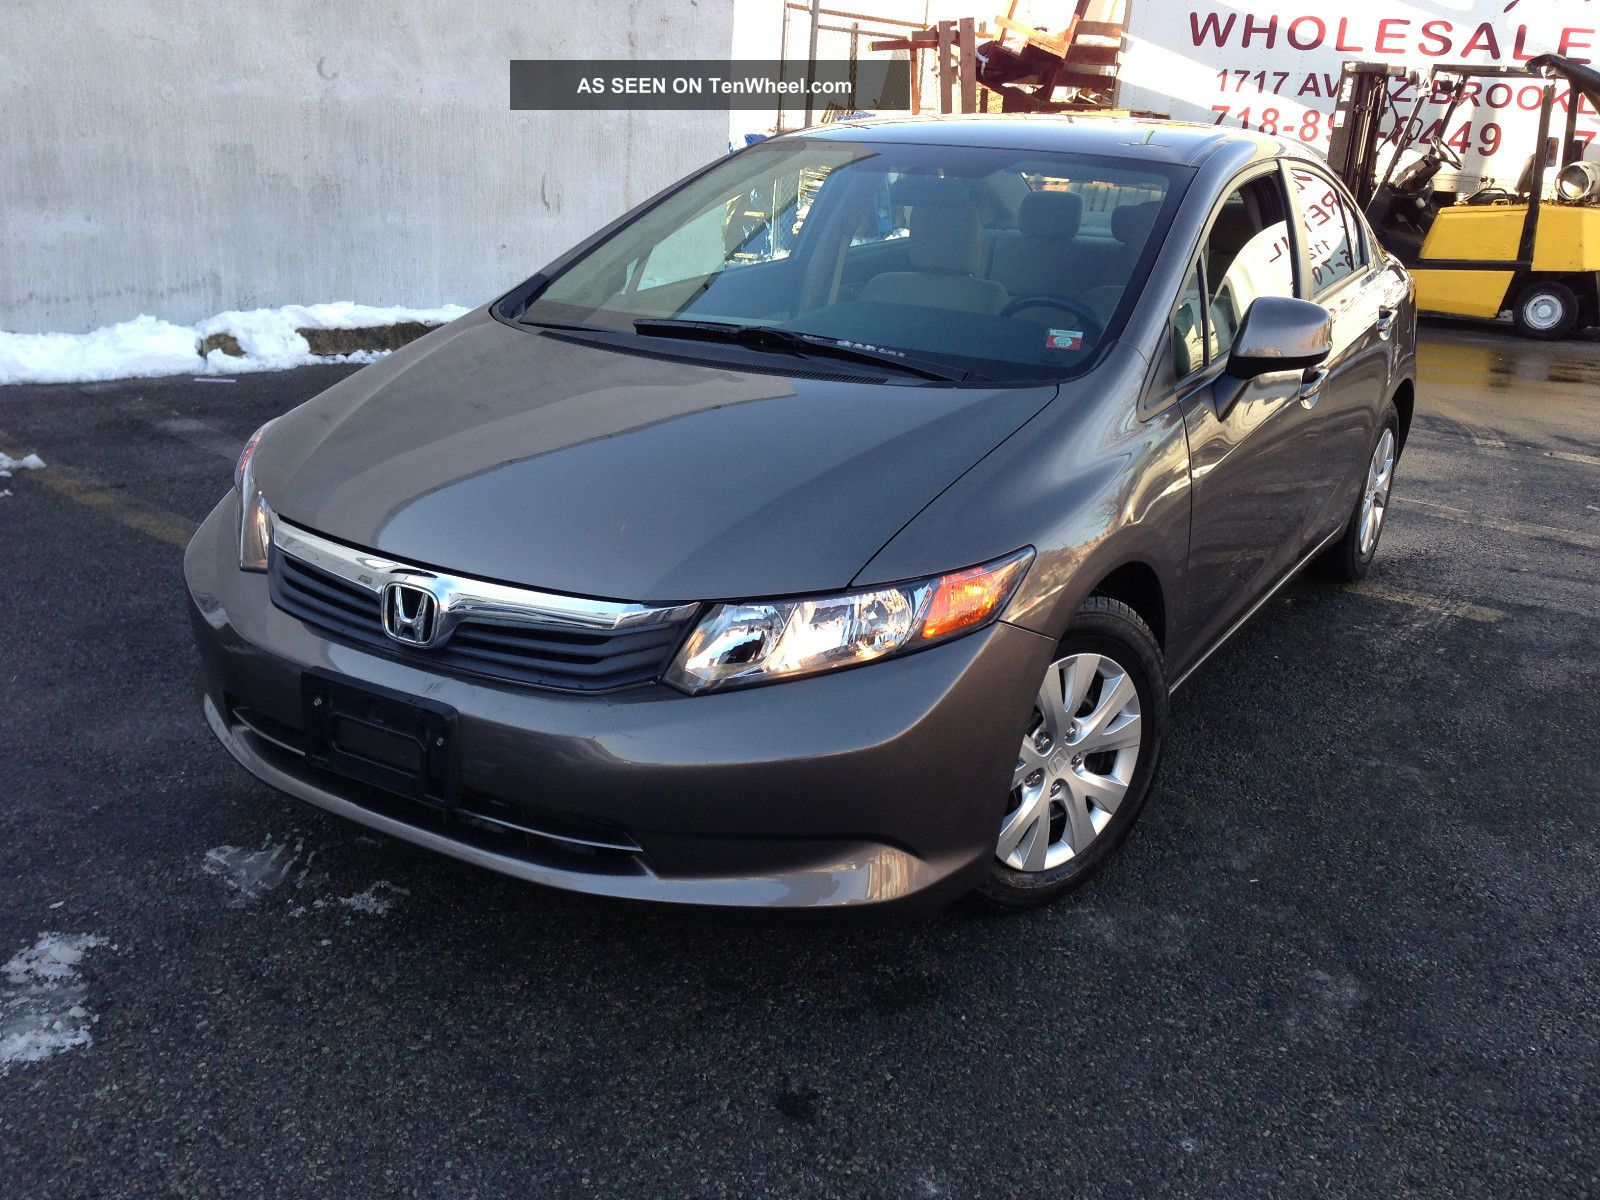 2012 Honda Civic Lx Sedan 4 Door 1 8l Sedan Gas Saver